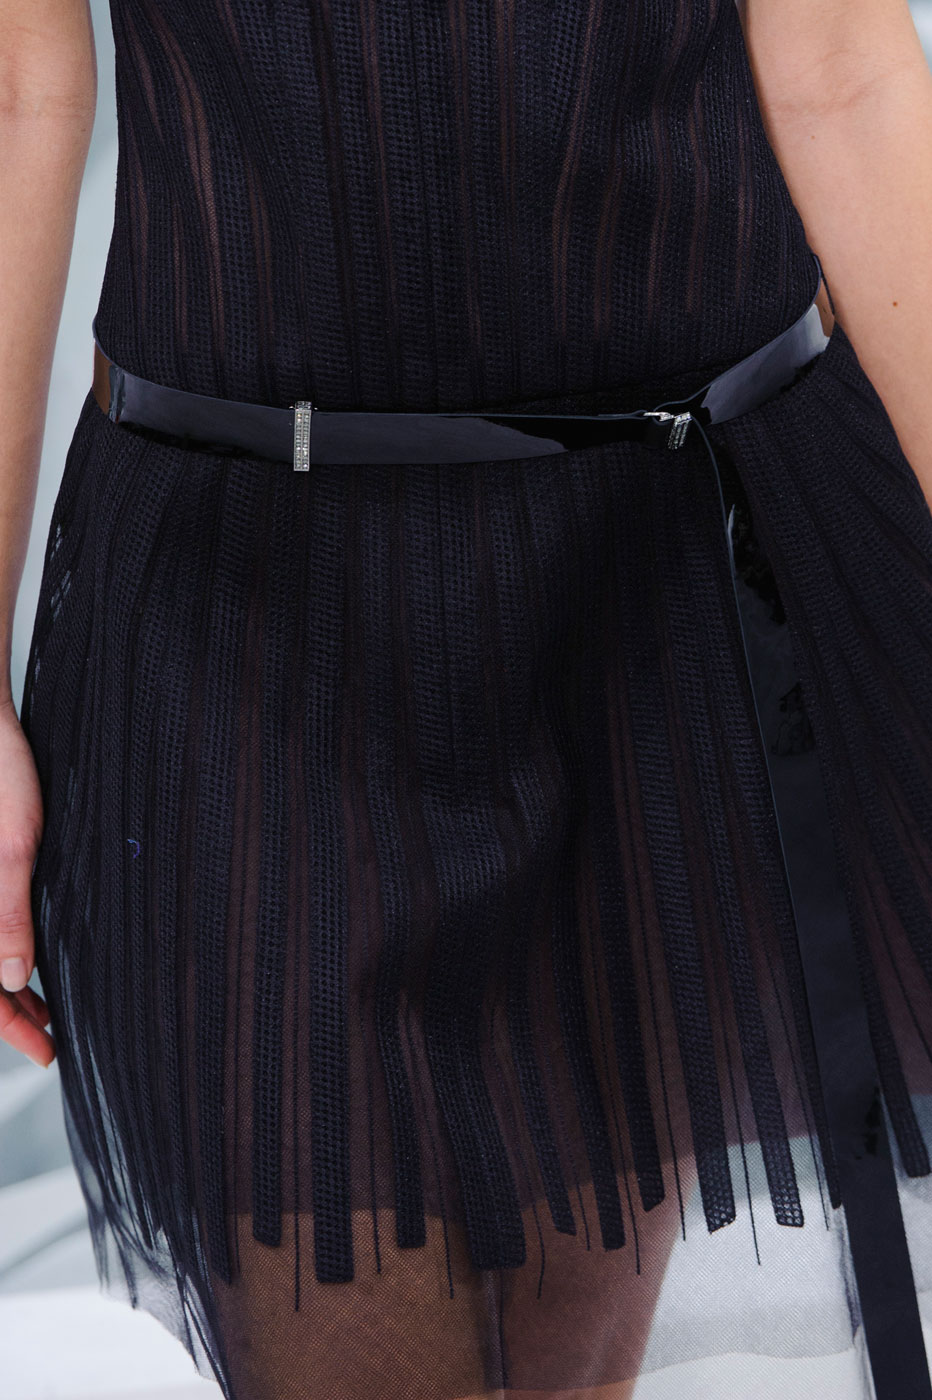 Chanel-fashion-runway-show-close-ups-haute-couture-paris-spring-summer-2015-the-impression-066